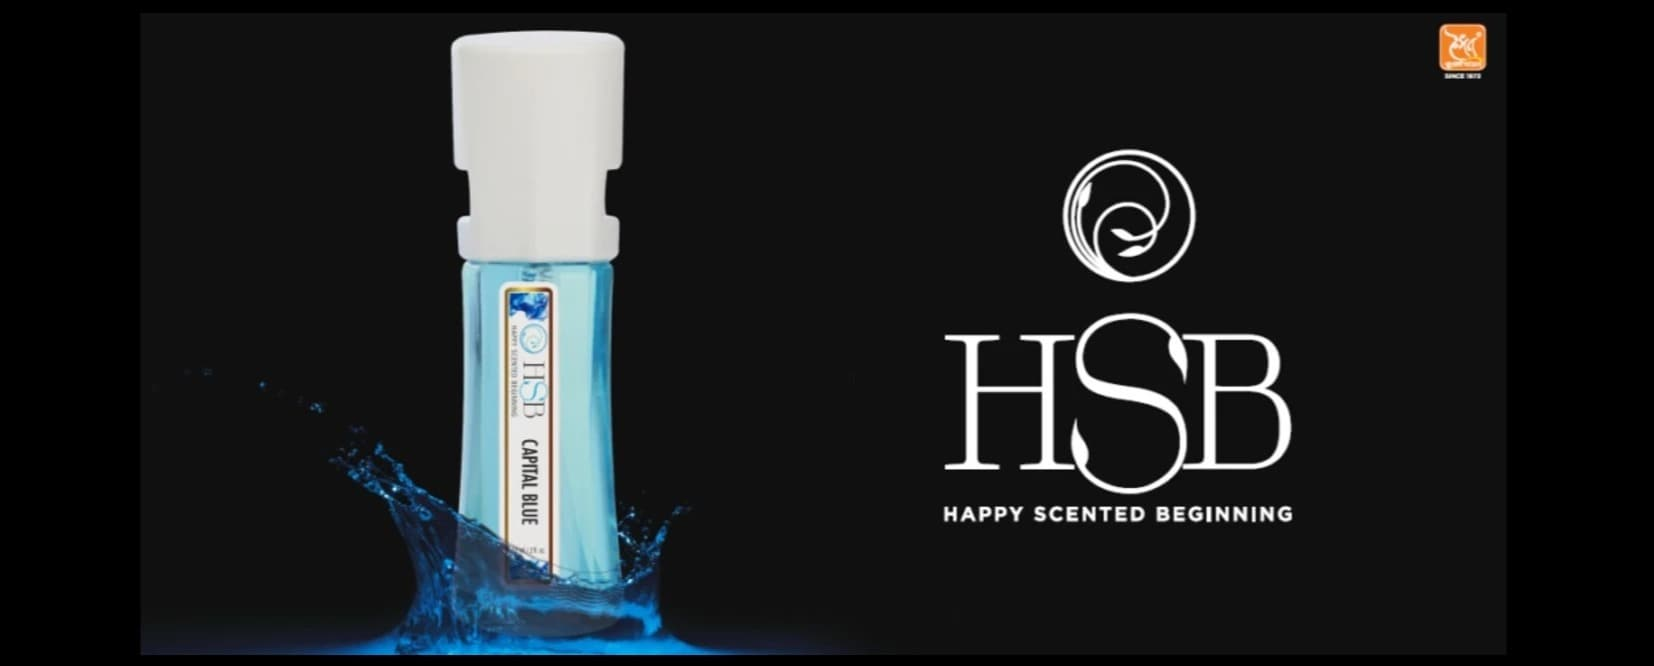 Hsb Enterprises Pvt Ltd - Perfume And Cologne Dealer in Dombivli East, Thane